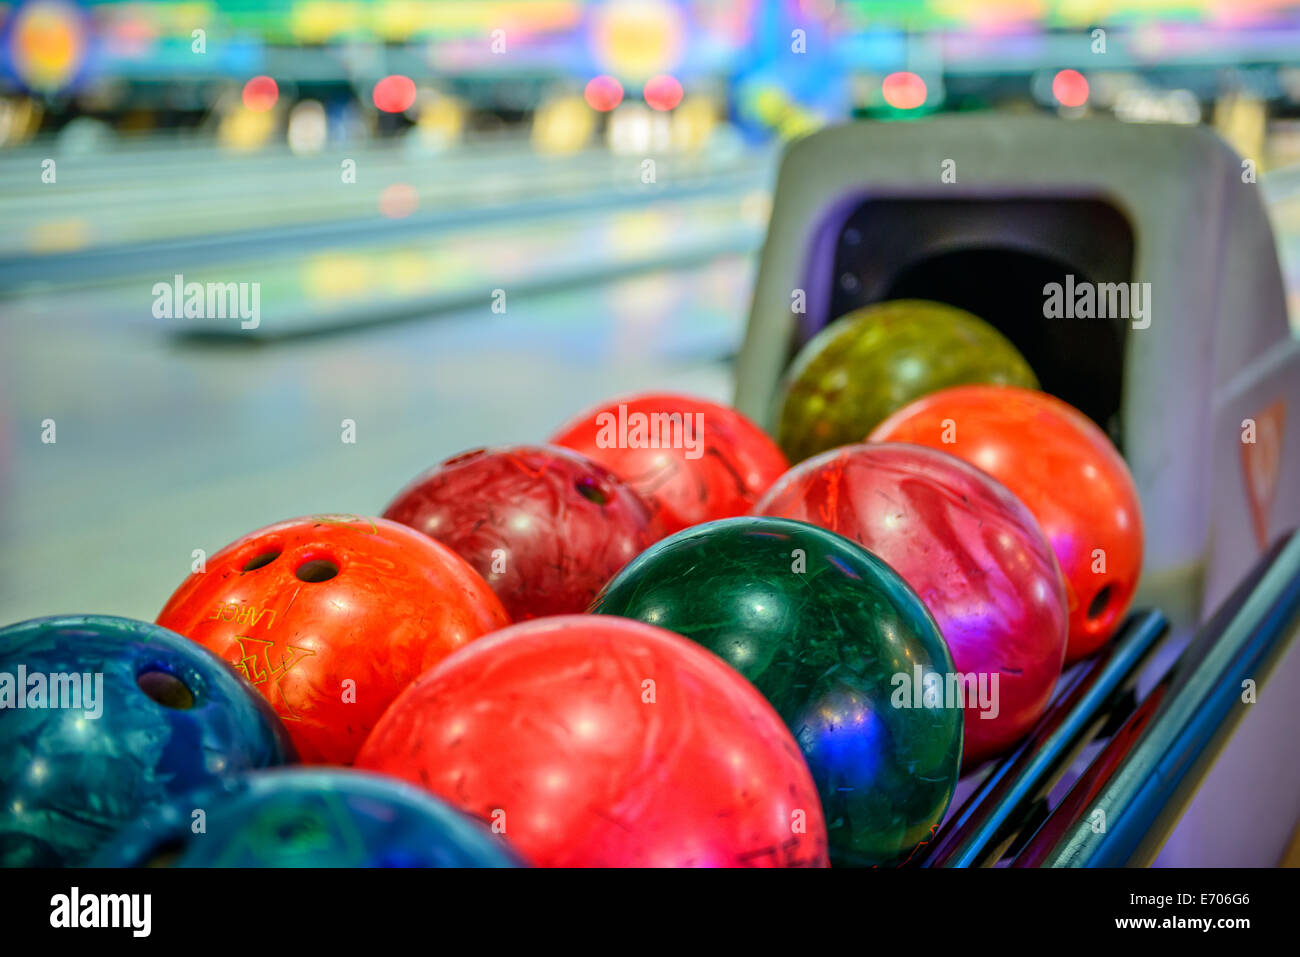 Close-up view of bowling balls - Stock Image